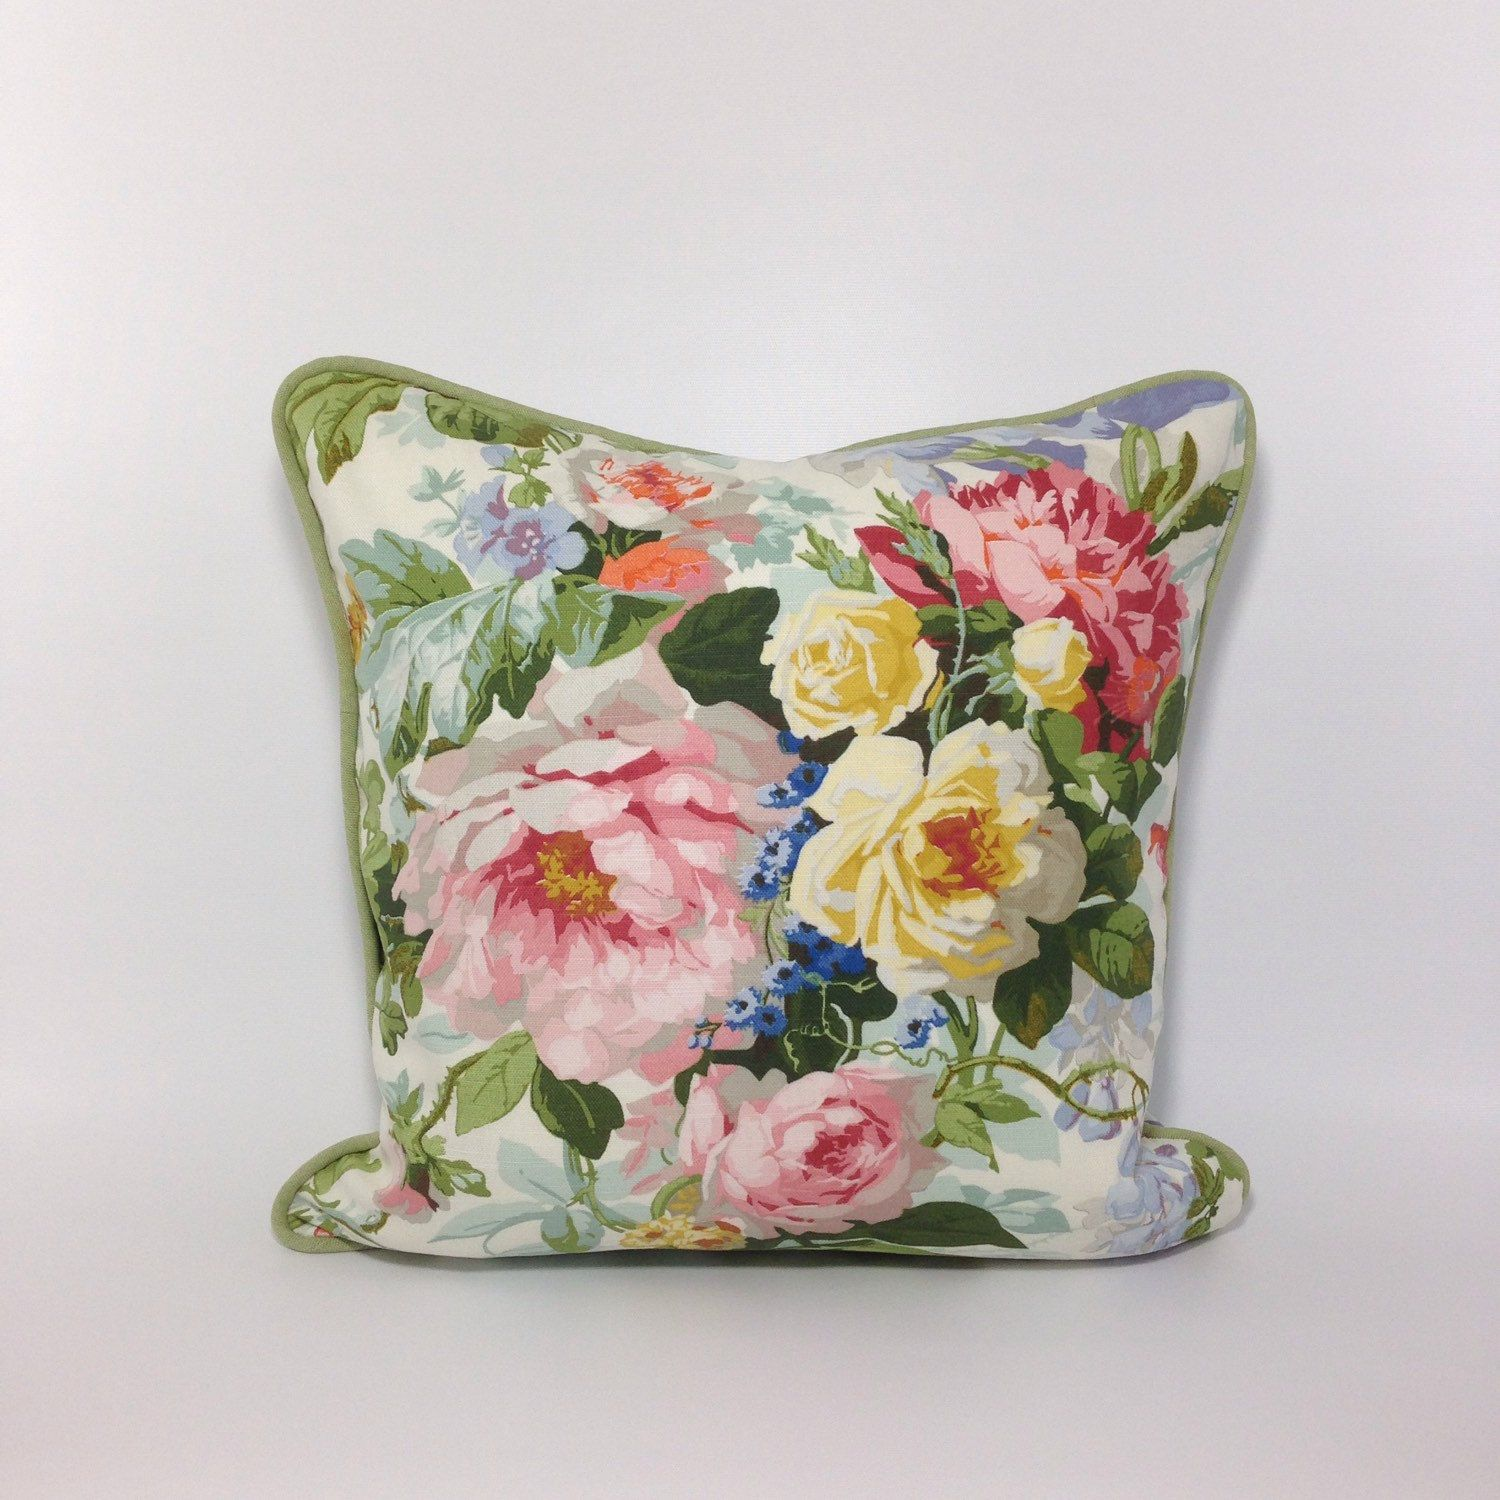 Beautiful floral pillow cover made from fabric designed by kaufmann